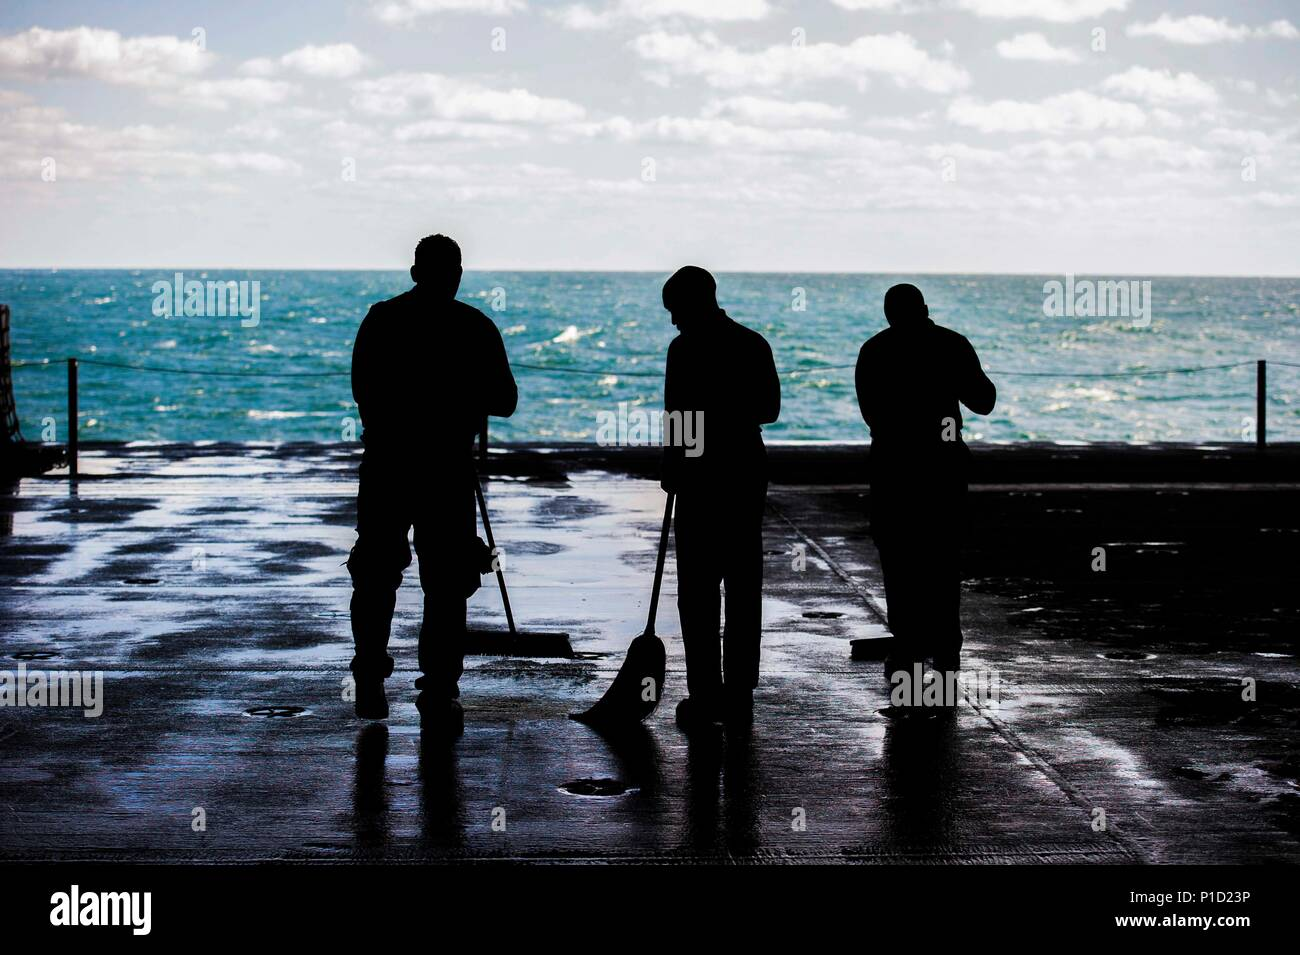 161014-N-RG522-016 ATLANTIC OCEAN (Oct. 14, 2016) Sailors sweep the hangar bay after a countermeasure washdown drill aboard the aircraft carrier USS George Washington (CVN73). George Washington, homeported in Norfolk, is underway in the Atlantic Ocean. (U.S. Navy photo by Seaman Jonathan Price) - Stock Image